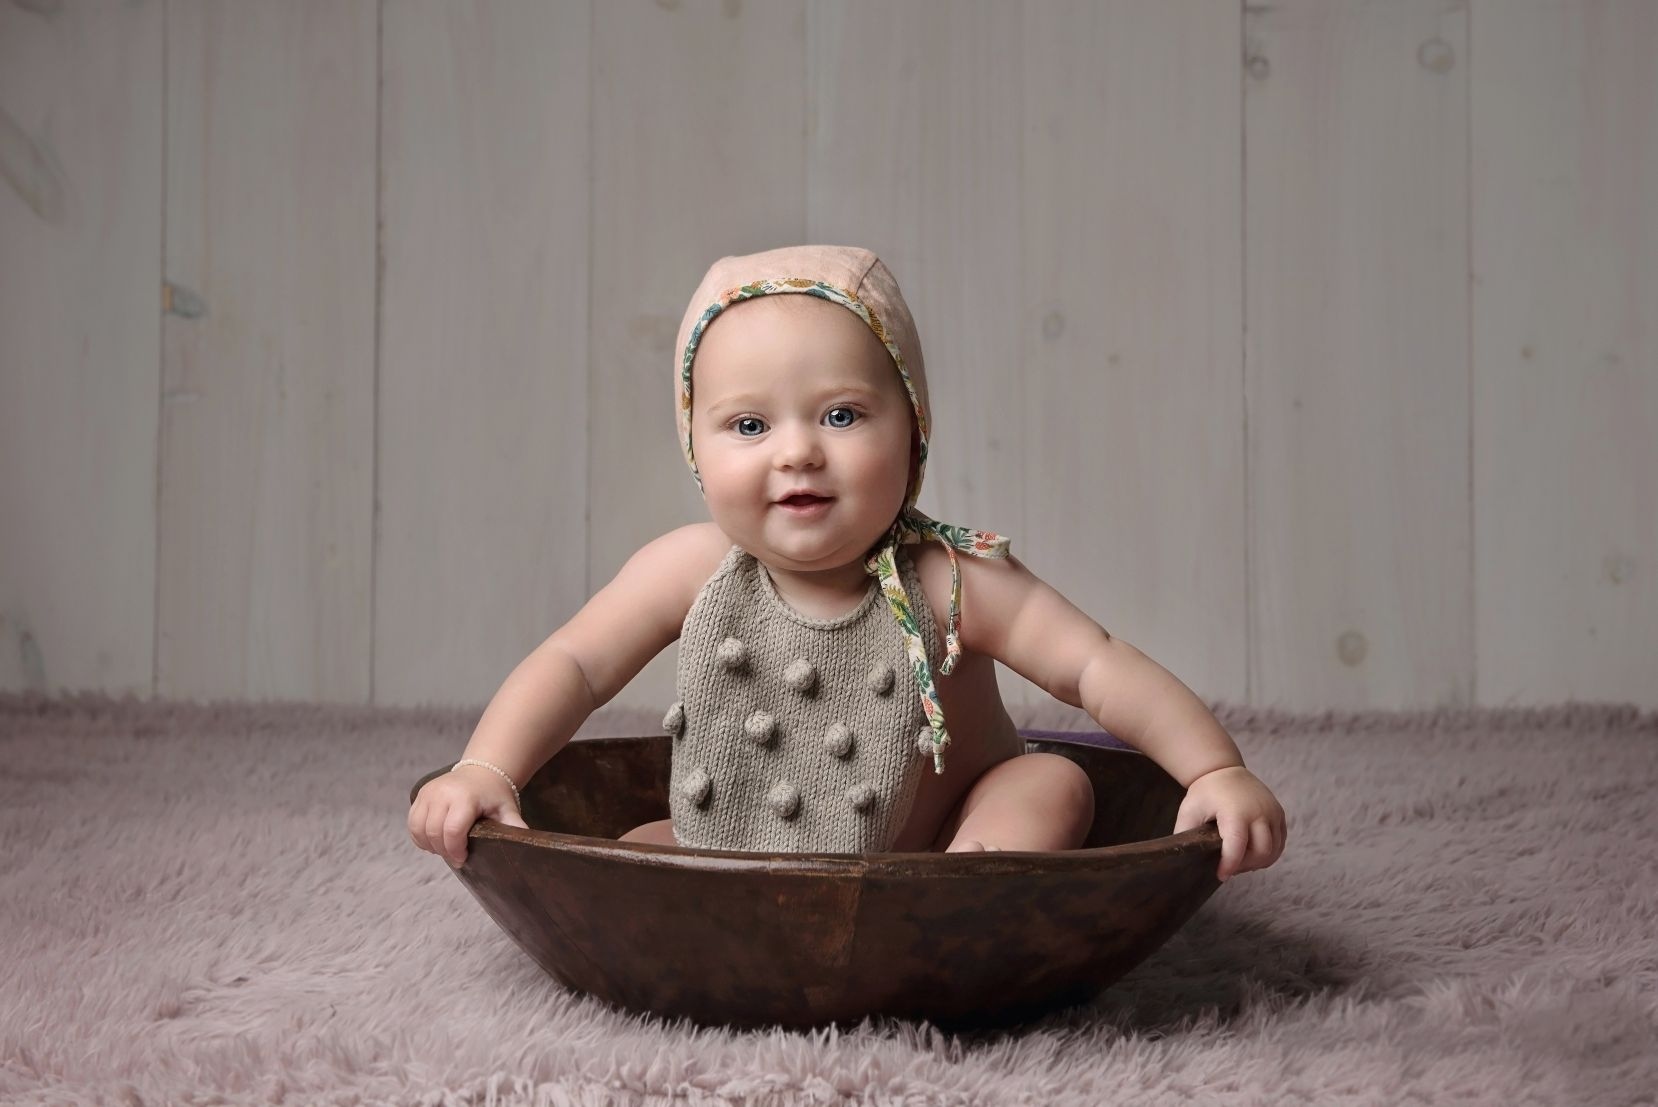 Baby Portrait photography in camp hill pa studio